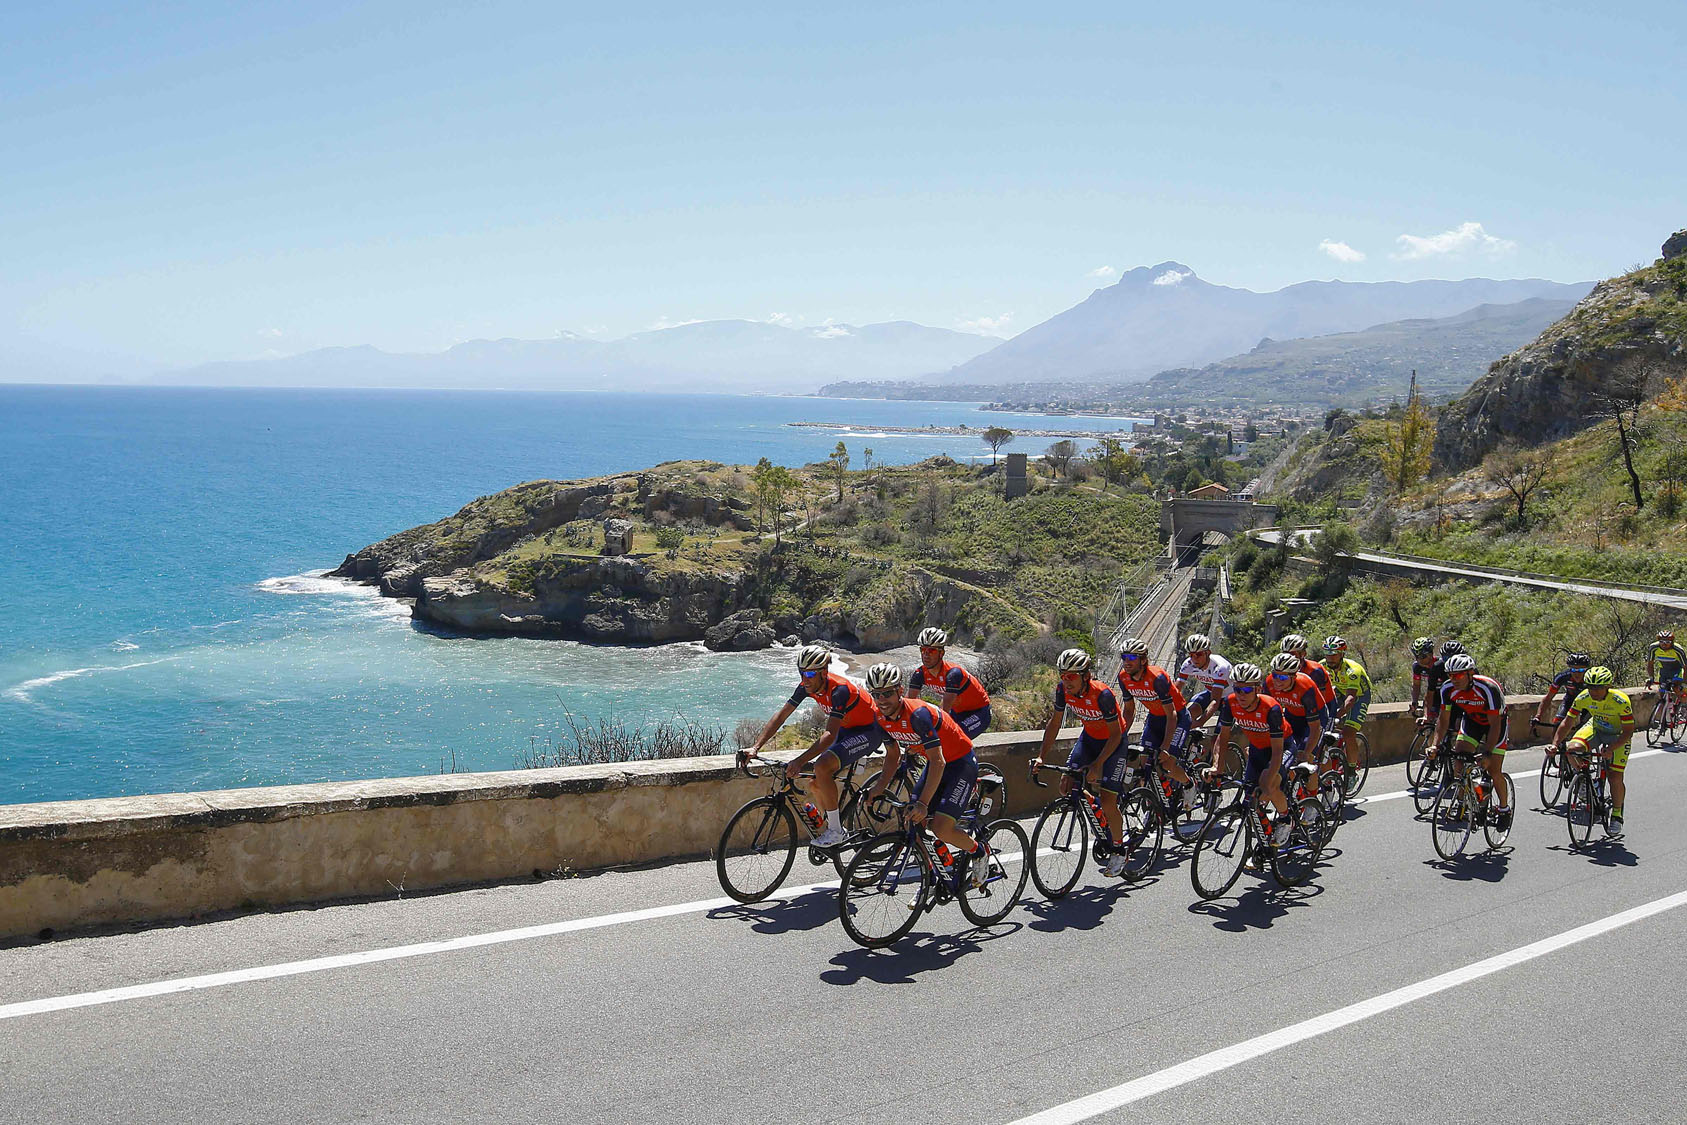 Giro d'Italia, Tour of Italy, cycling race